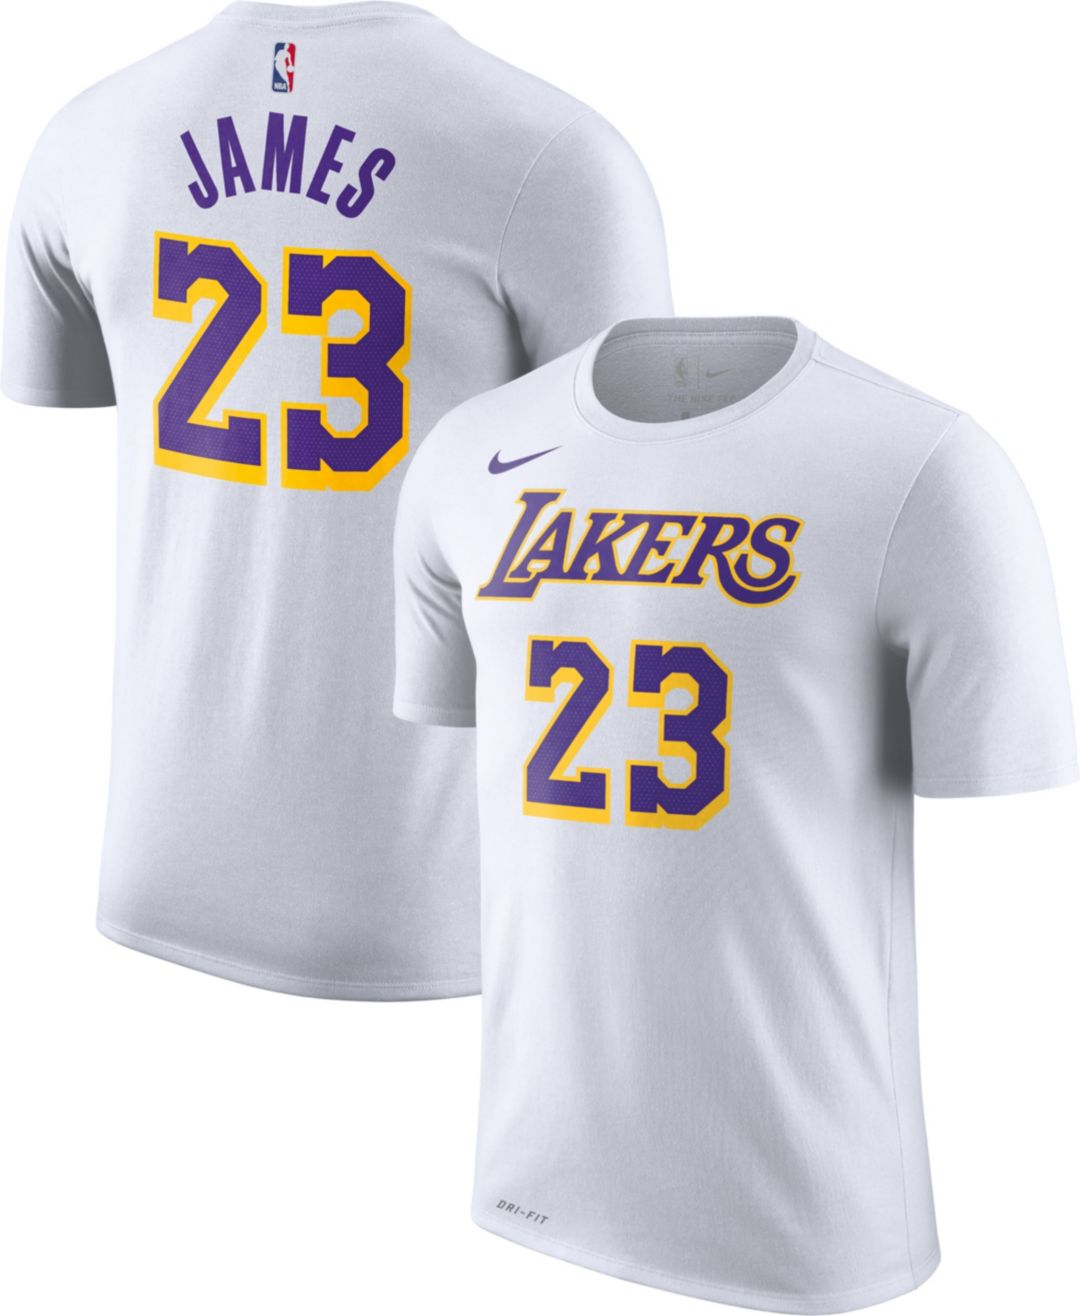 brand new 4c8fd 5c9c1 lebron dri fit shirts